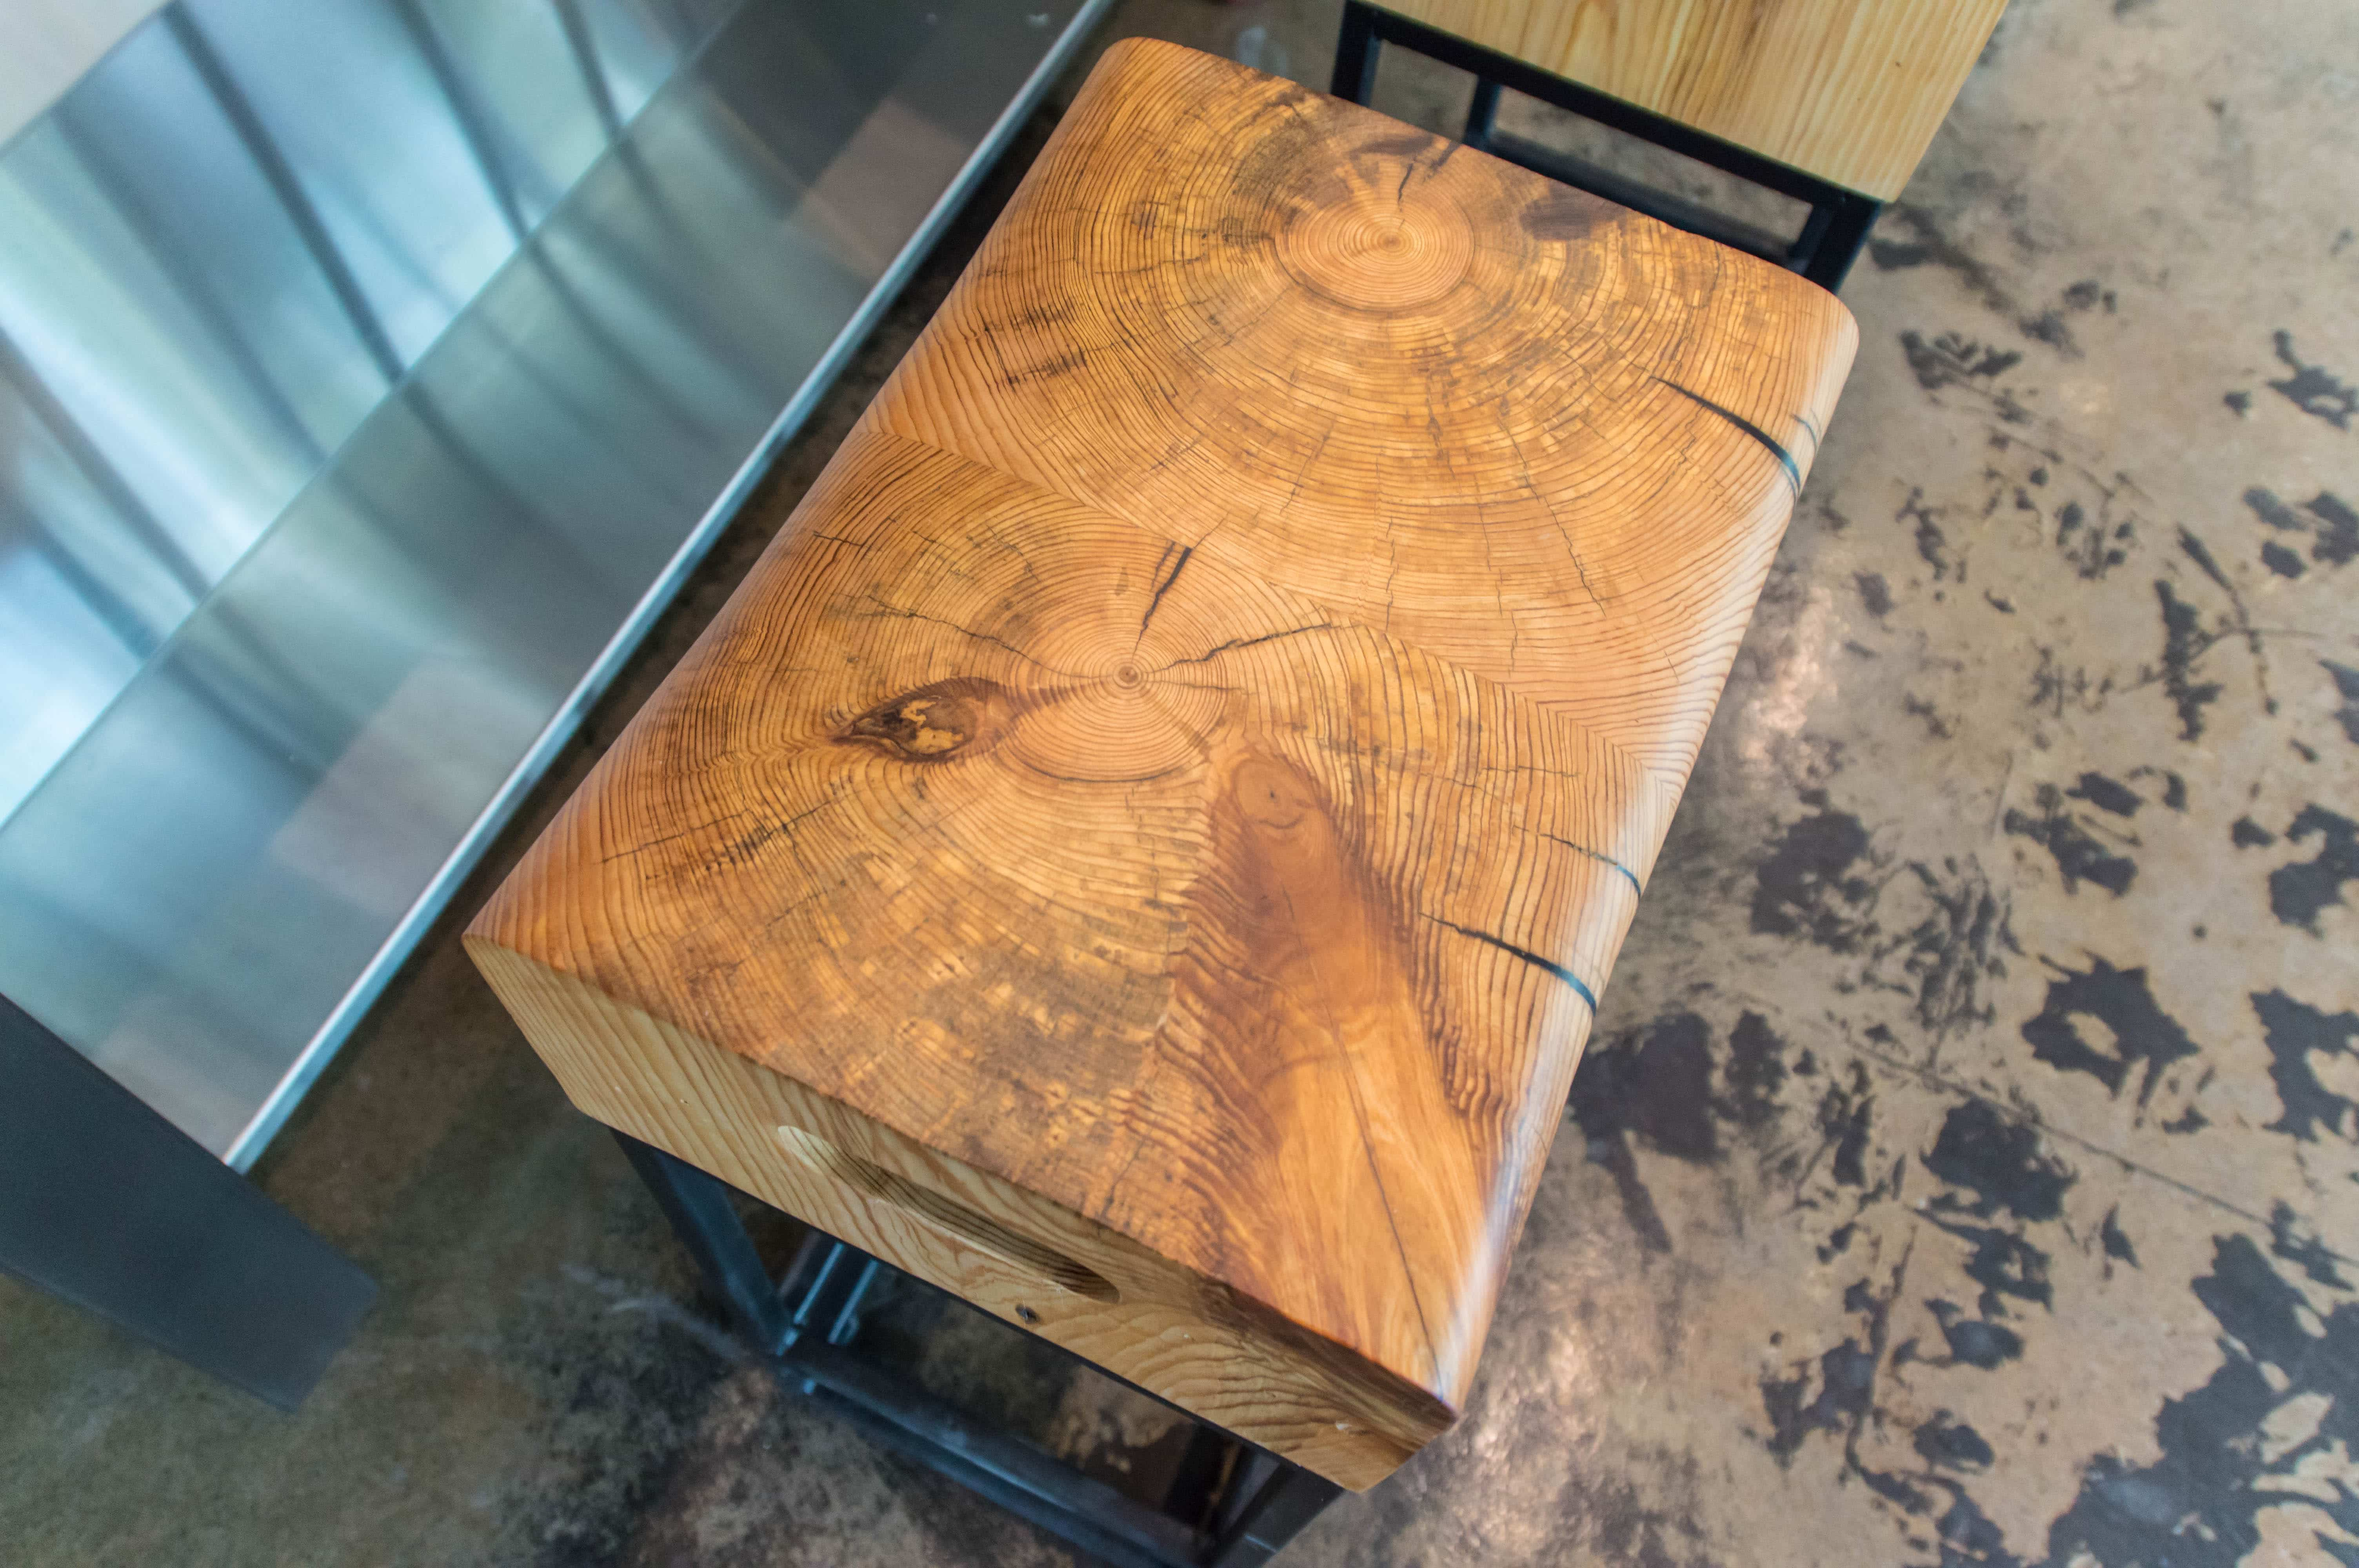 Preferred Canadian Salvaged Timber - Reclaimed Wood and Furniture GI94